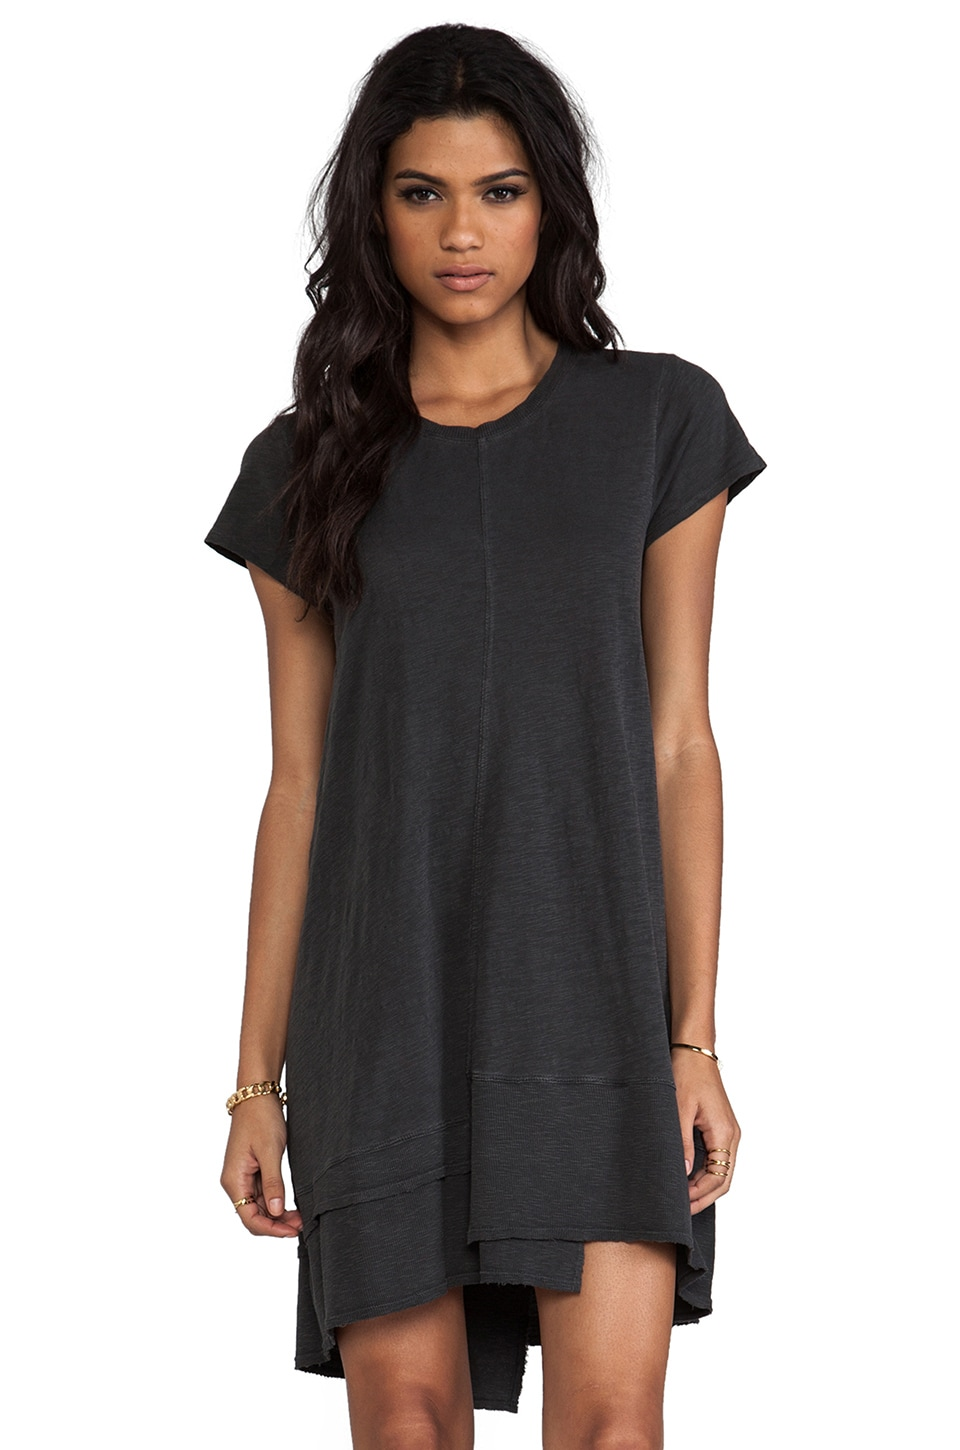 Wilt Twisted Seam Rib Mix Dress in Vintage Black